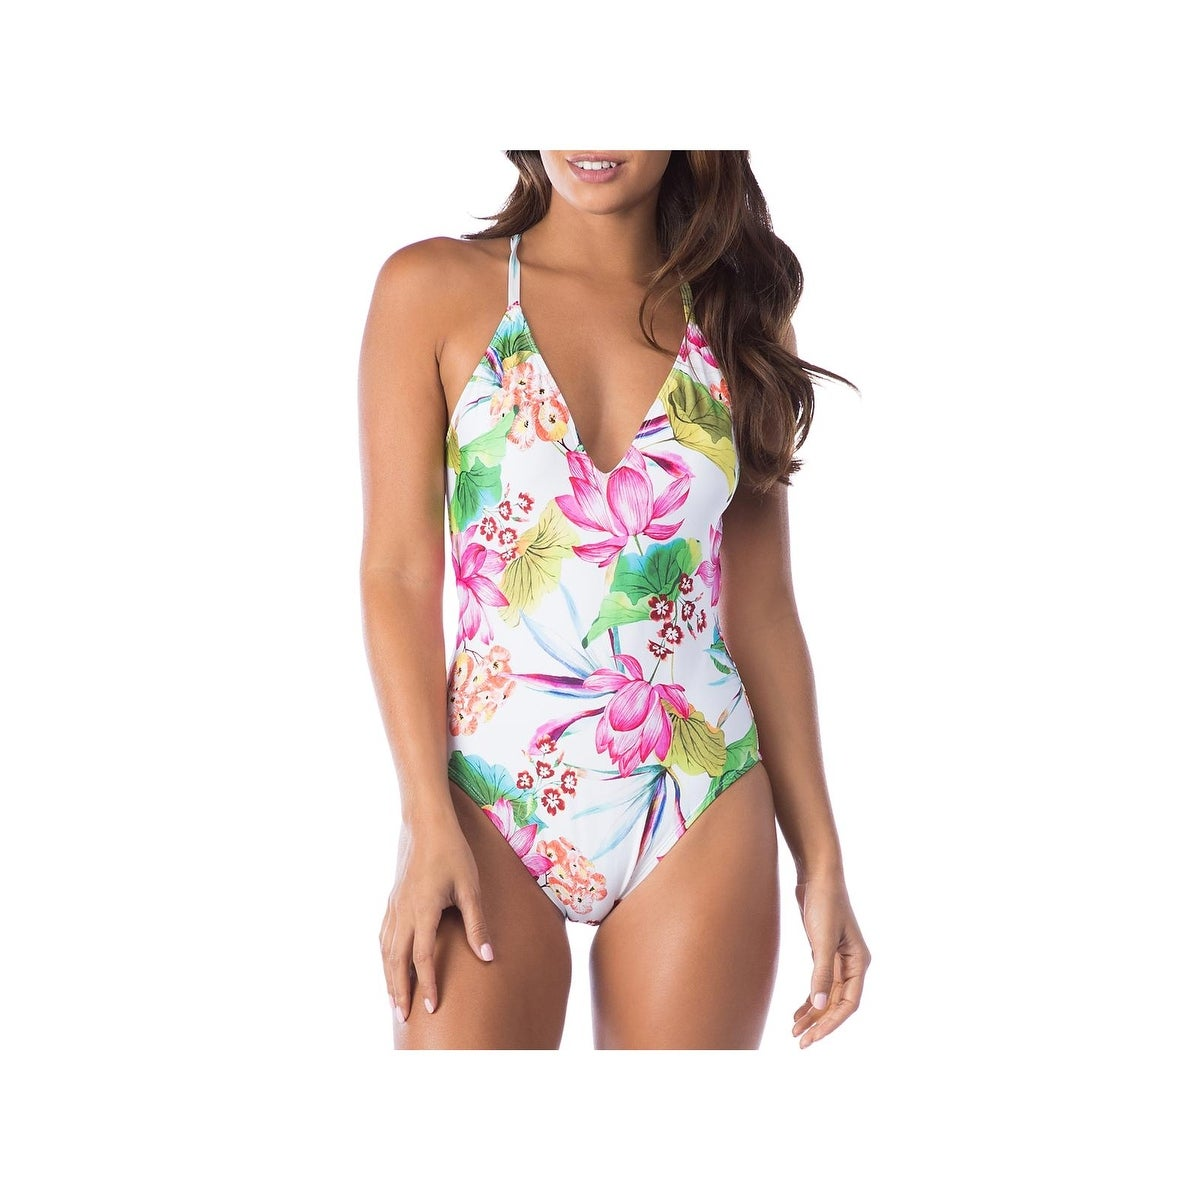 676b89cd84667 La Blanca Swimwear | Find Great Women's Clothing Deals Shopping at Overstock